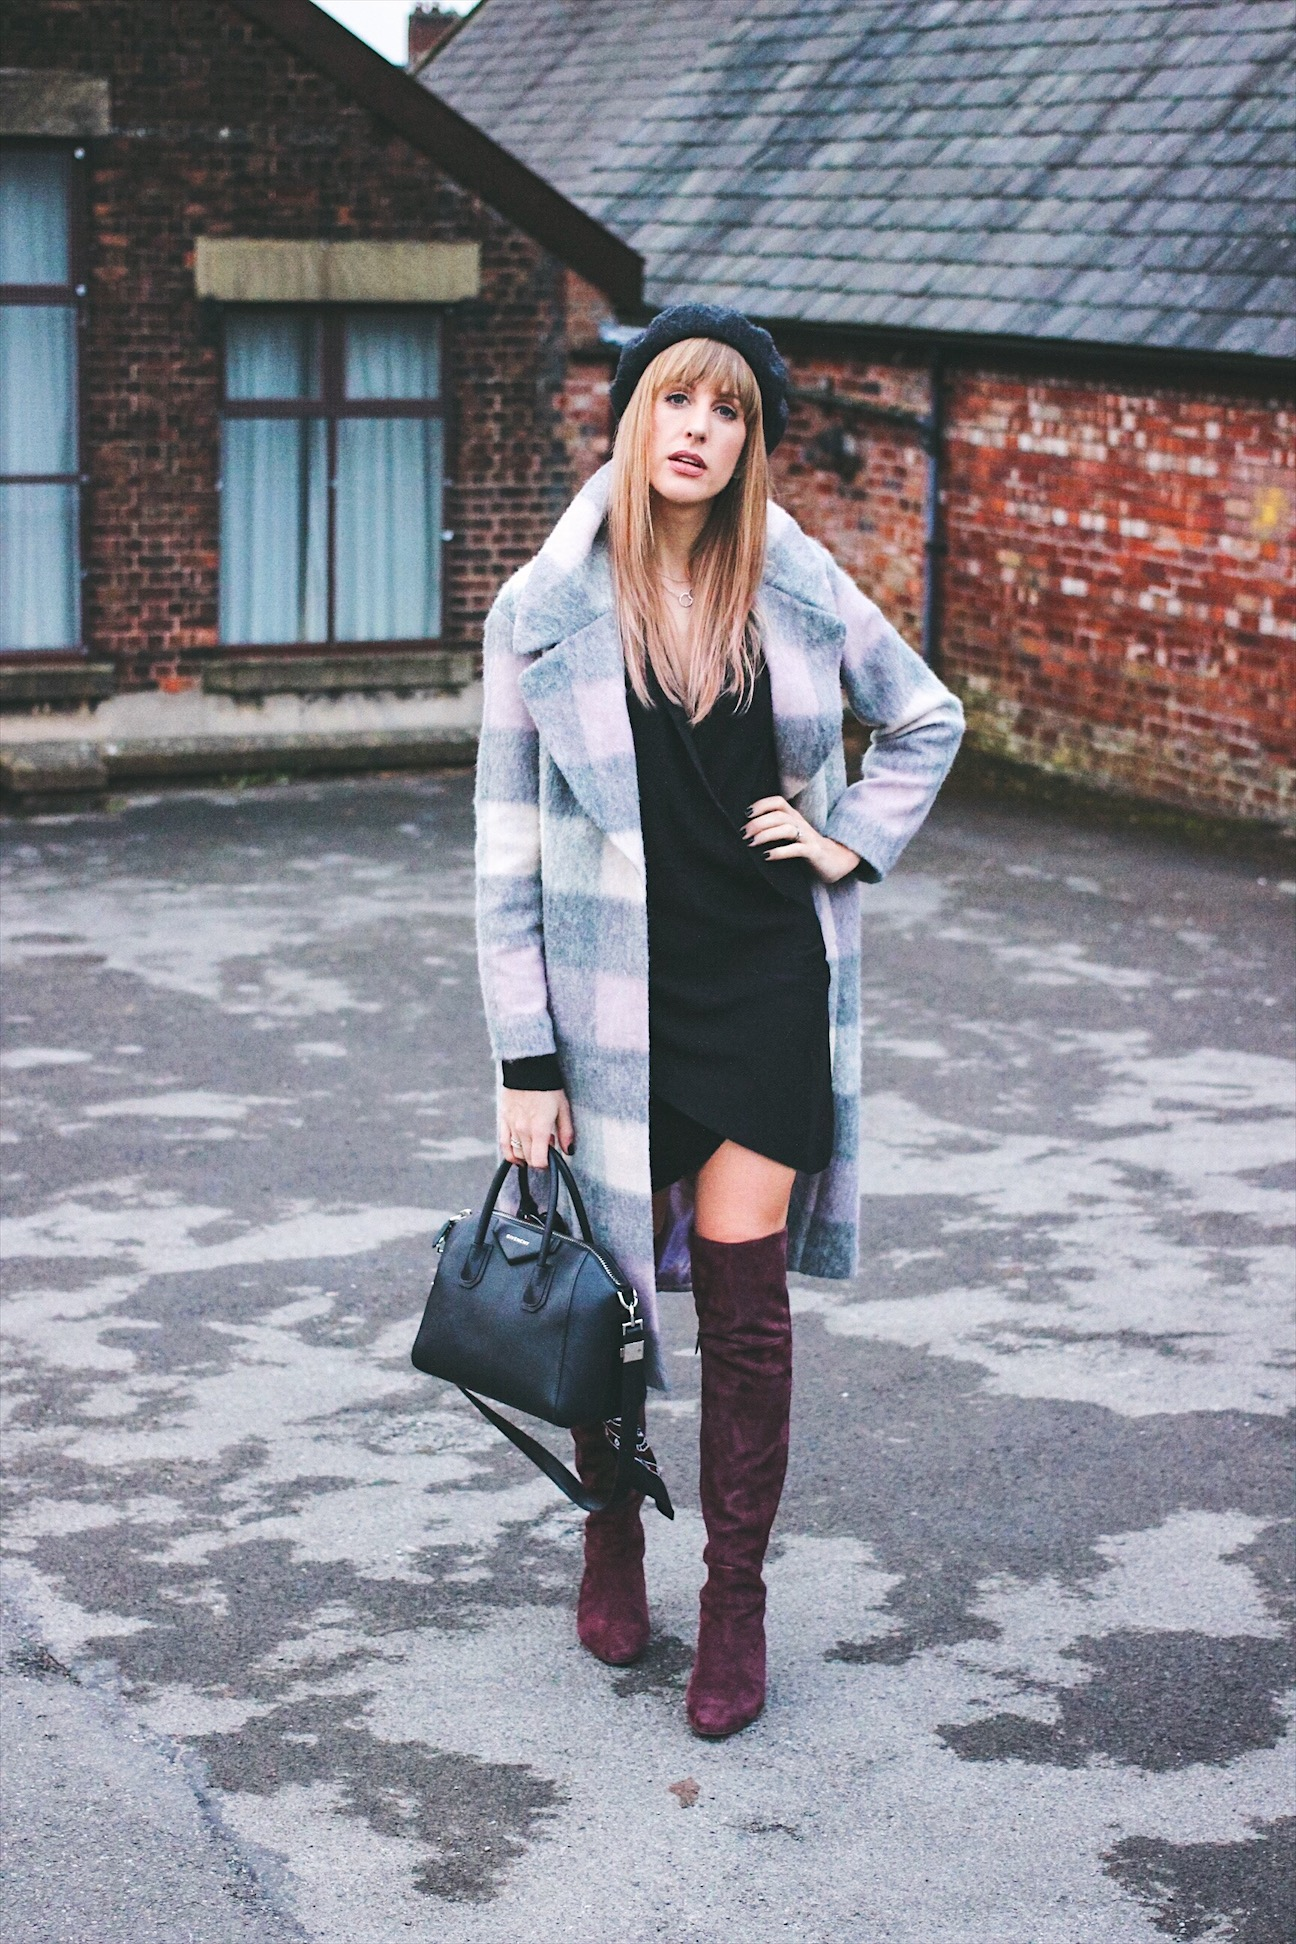 Checked coat and black dress outfit inspiration